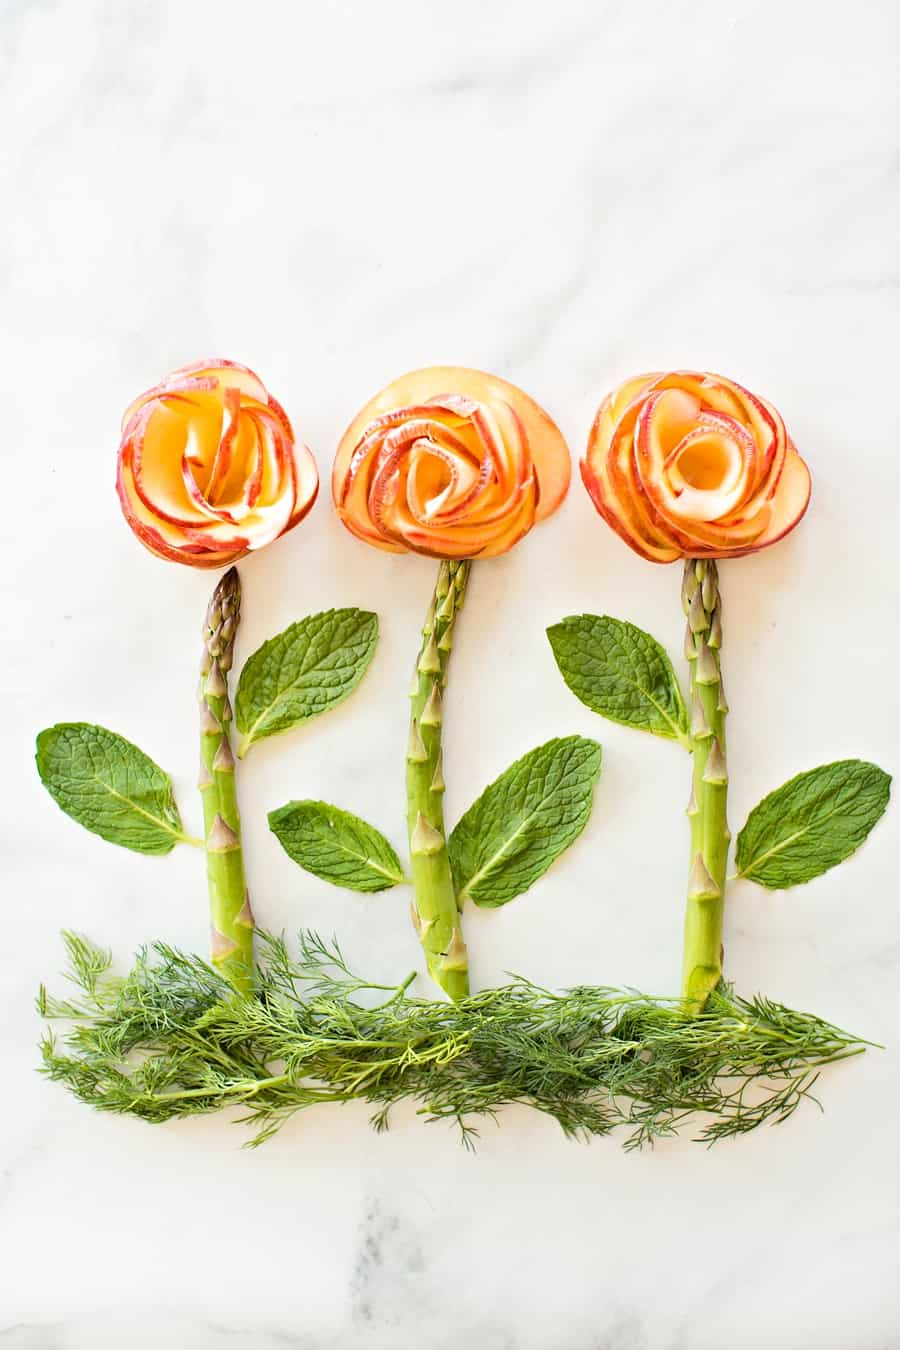 These gorgeous apple roses make a beautiful addition to any brunch and would be a wonderful surprise for Mother's Day breakfast!